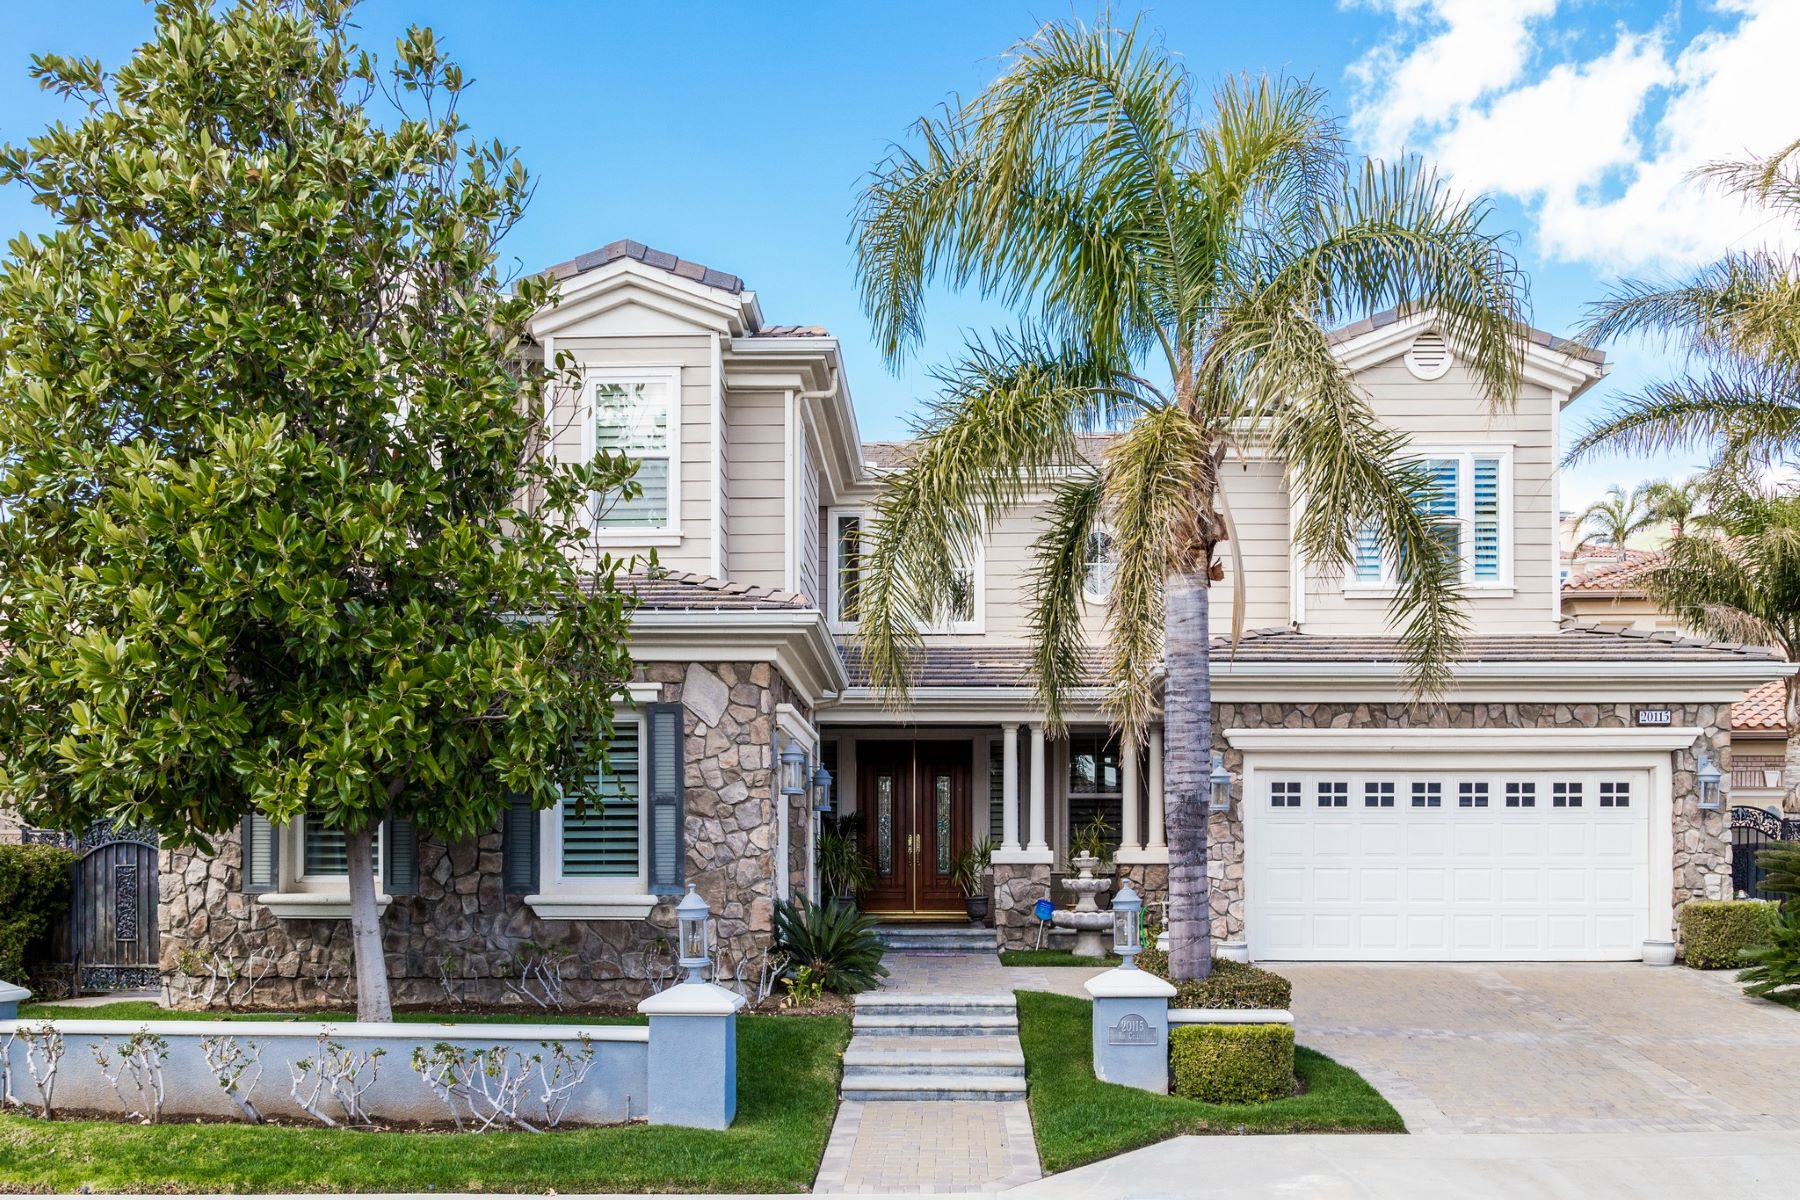 Single Family Homes for Sale at 20115 Via Cellini Porter Ranch, California 91326 United States